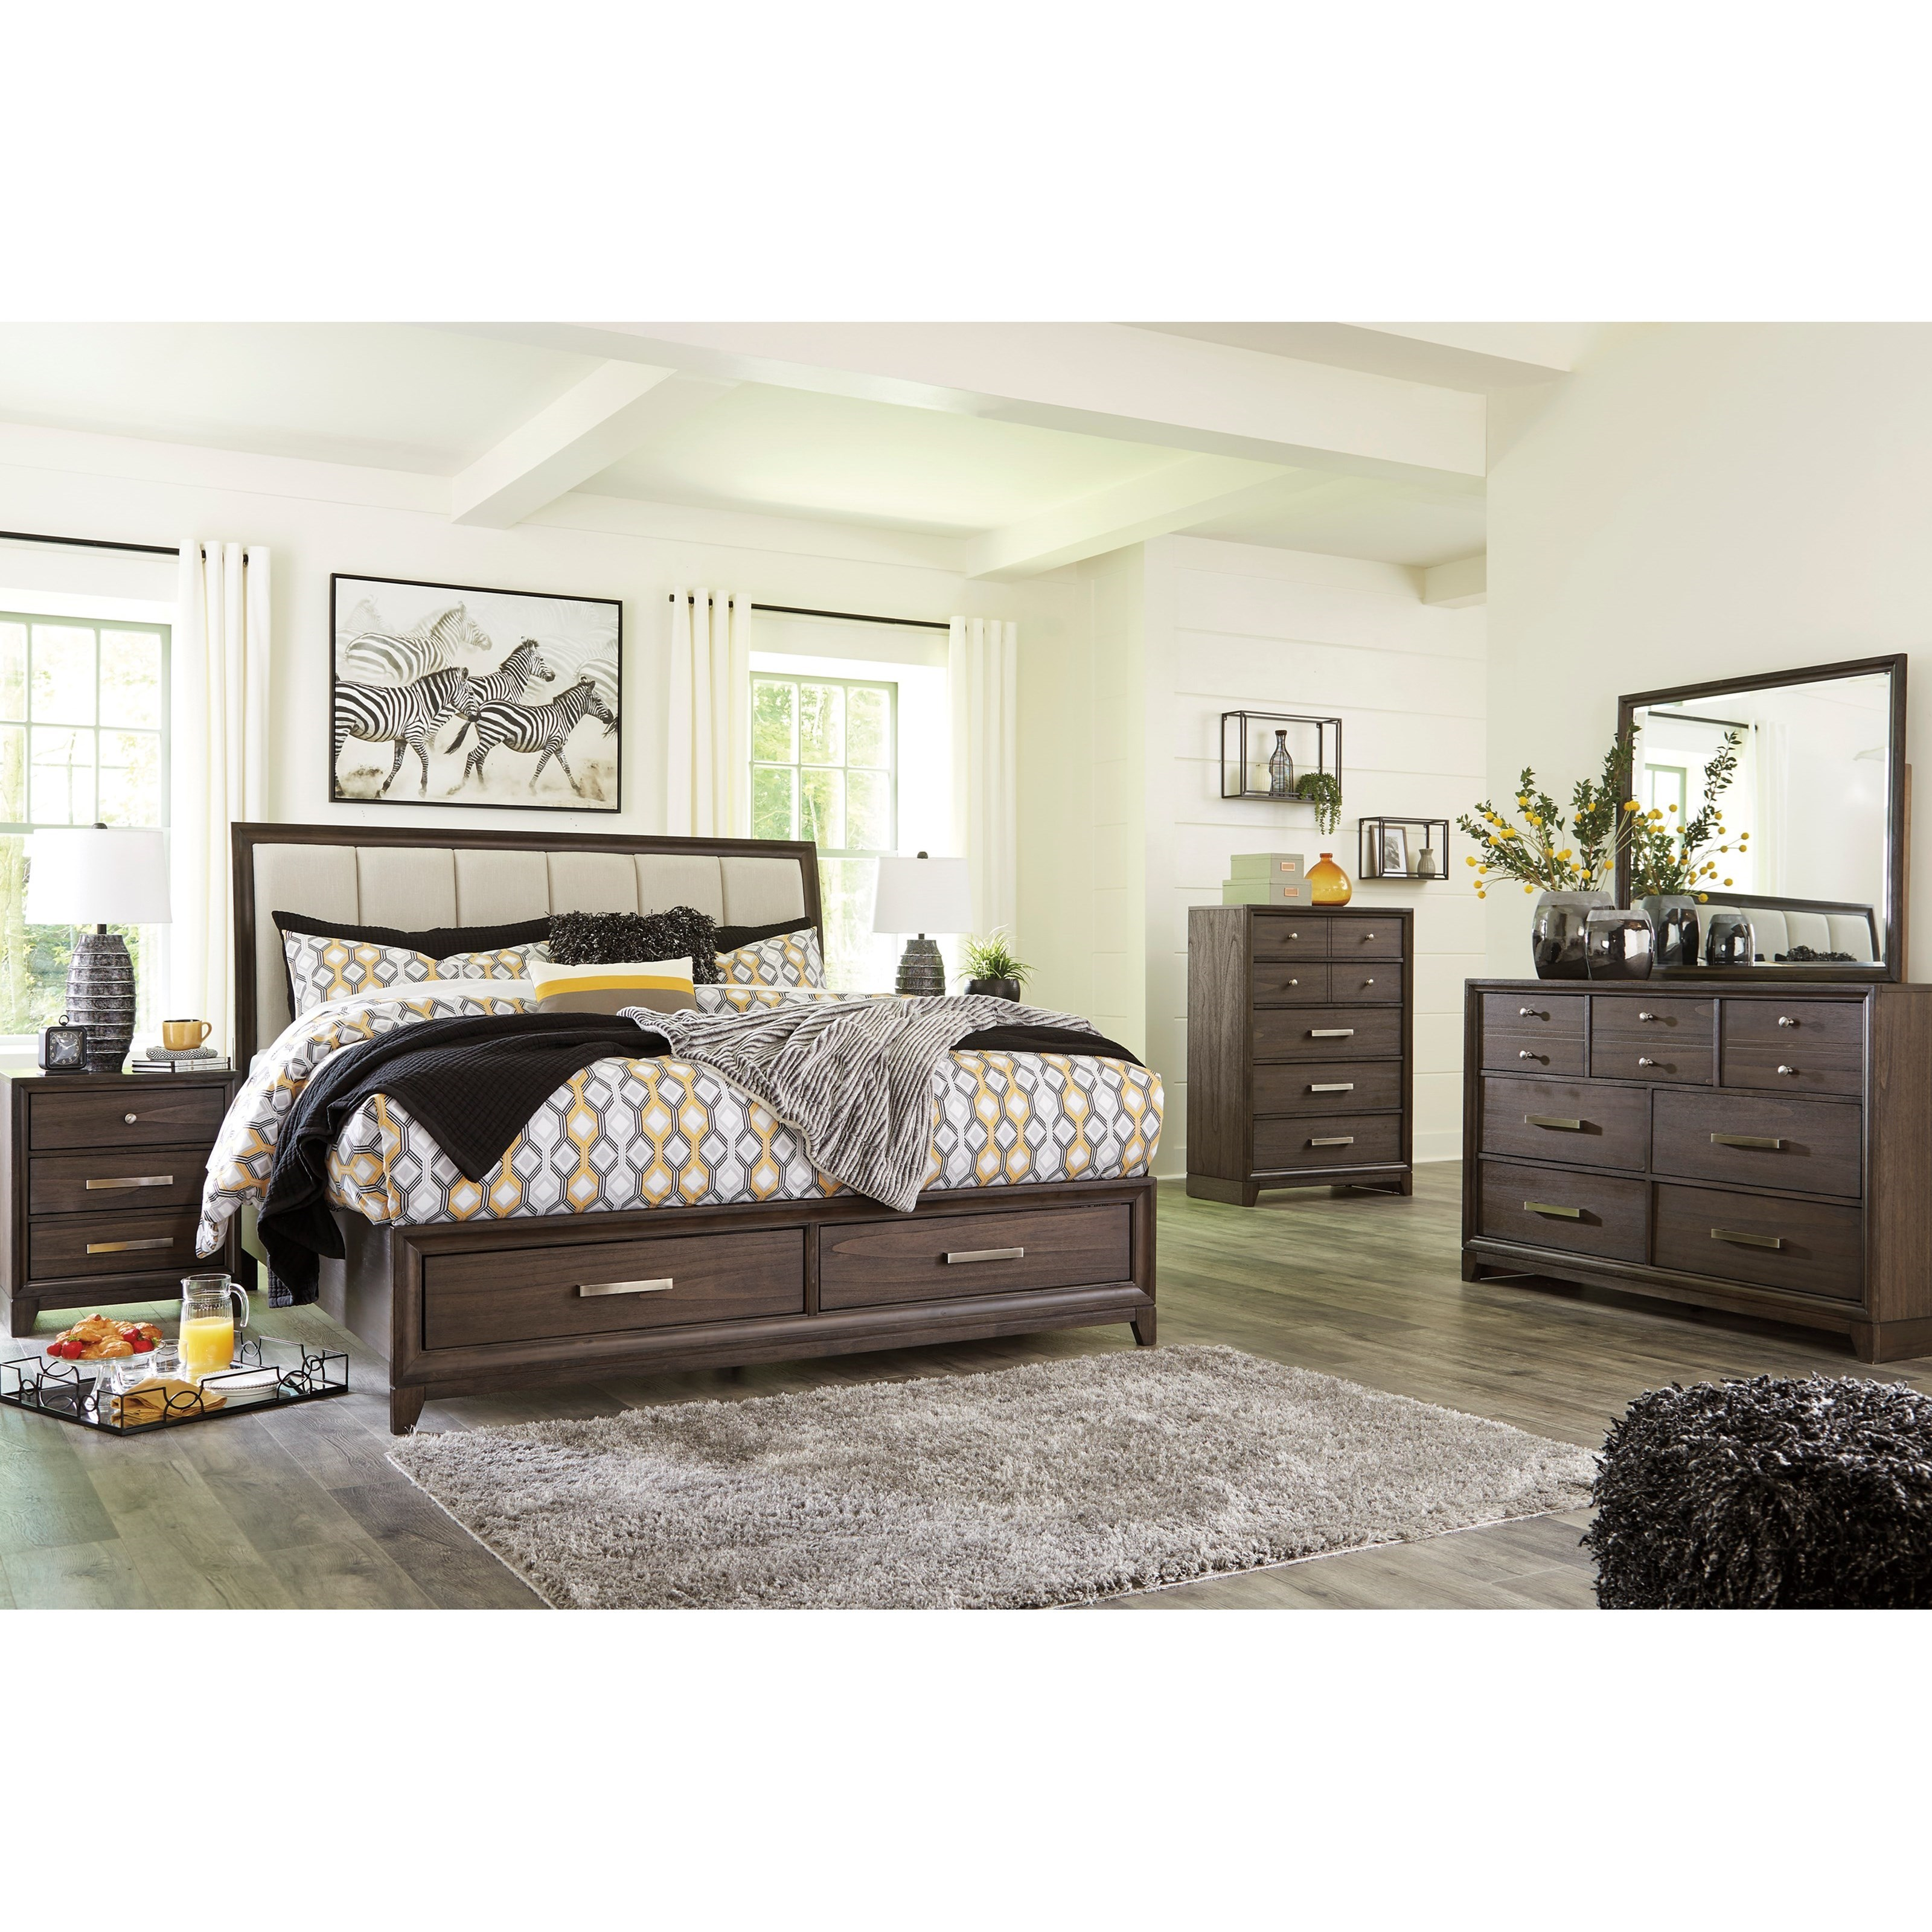 Brueban King Bedroom Group by Signature Design by Ashley at Northeast Factory Direct